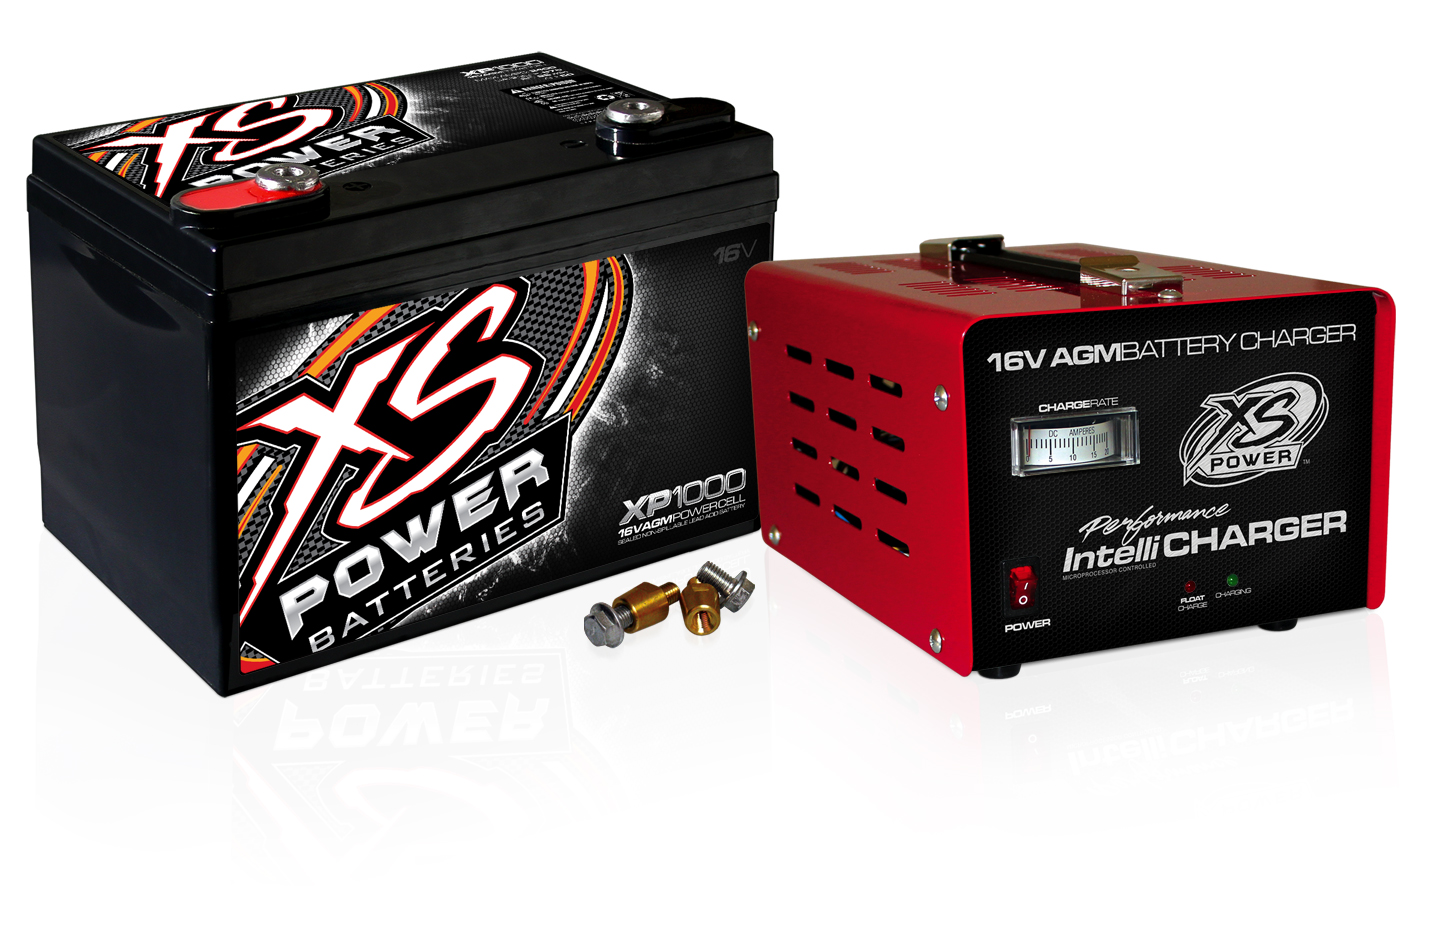 XS Power XP1000CK2 16V Battery and 16V 15 Amp IntelliCharger CombonFor Cars